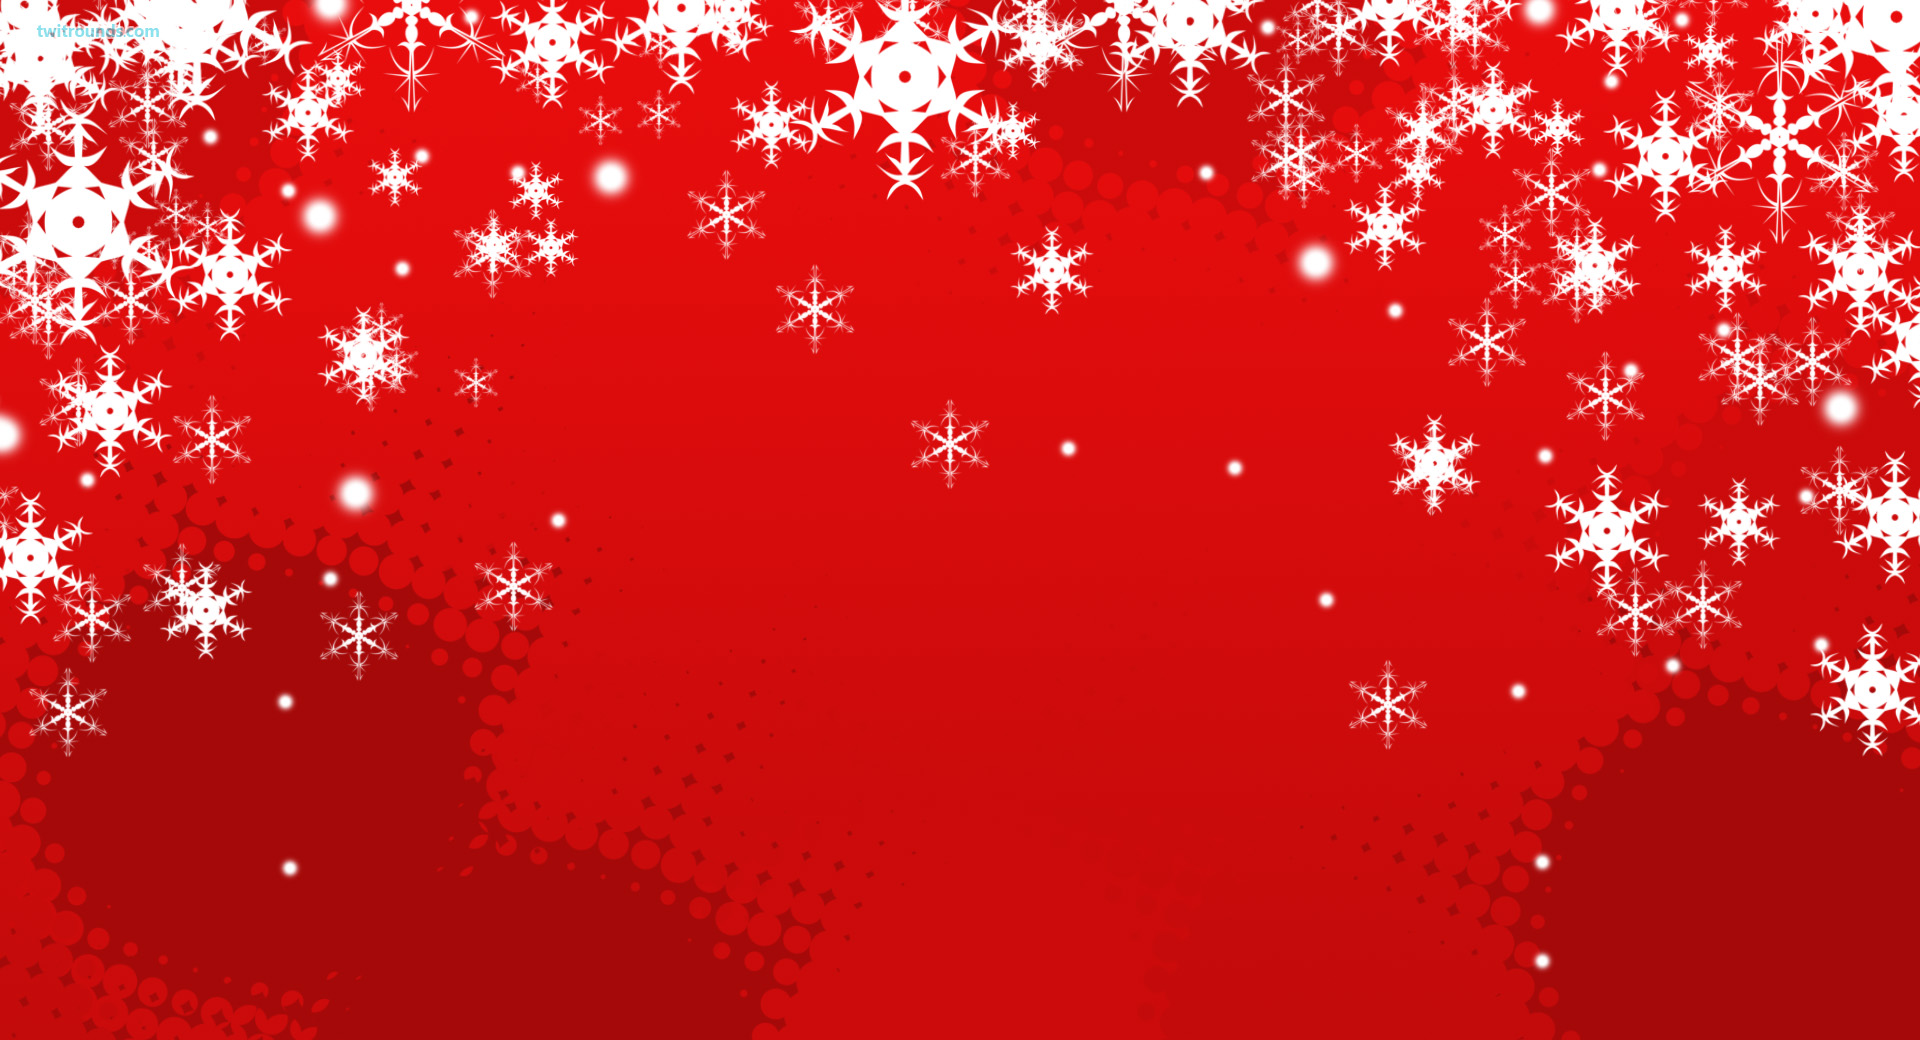 Christmas Snowflakes - Wallpaper, Gallery 520643507